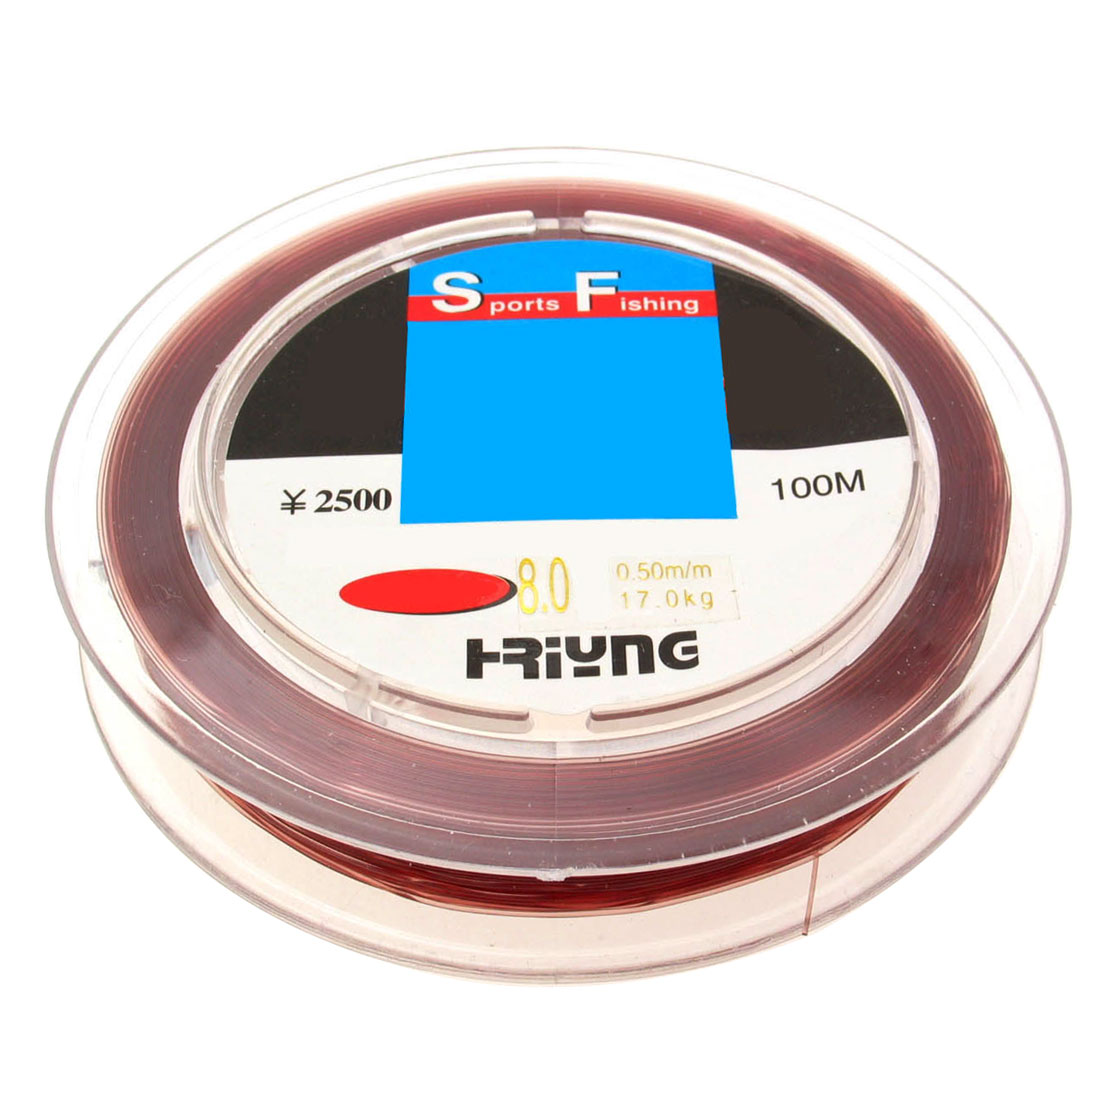 Fishing Line 100m Size 0.5mm